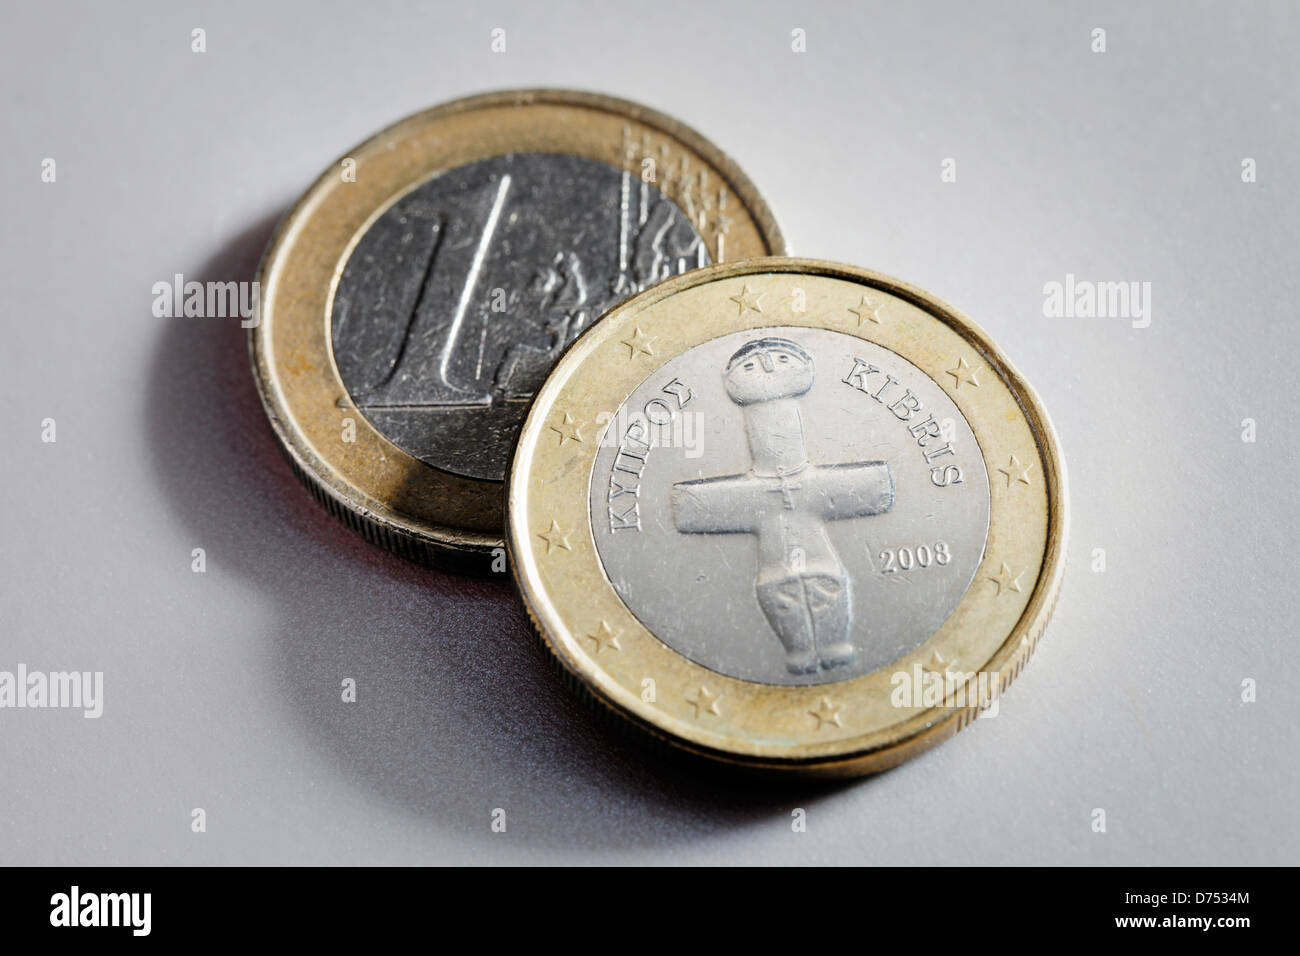 Two 1 Euro coins from Cyprus. - Stock Image